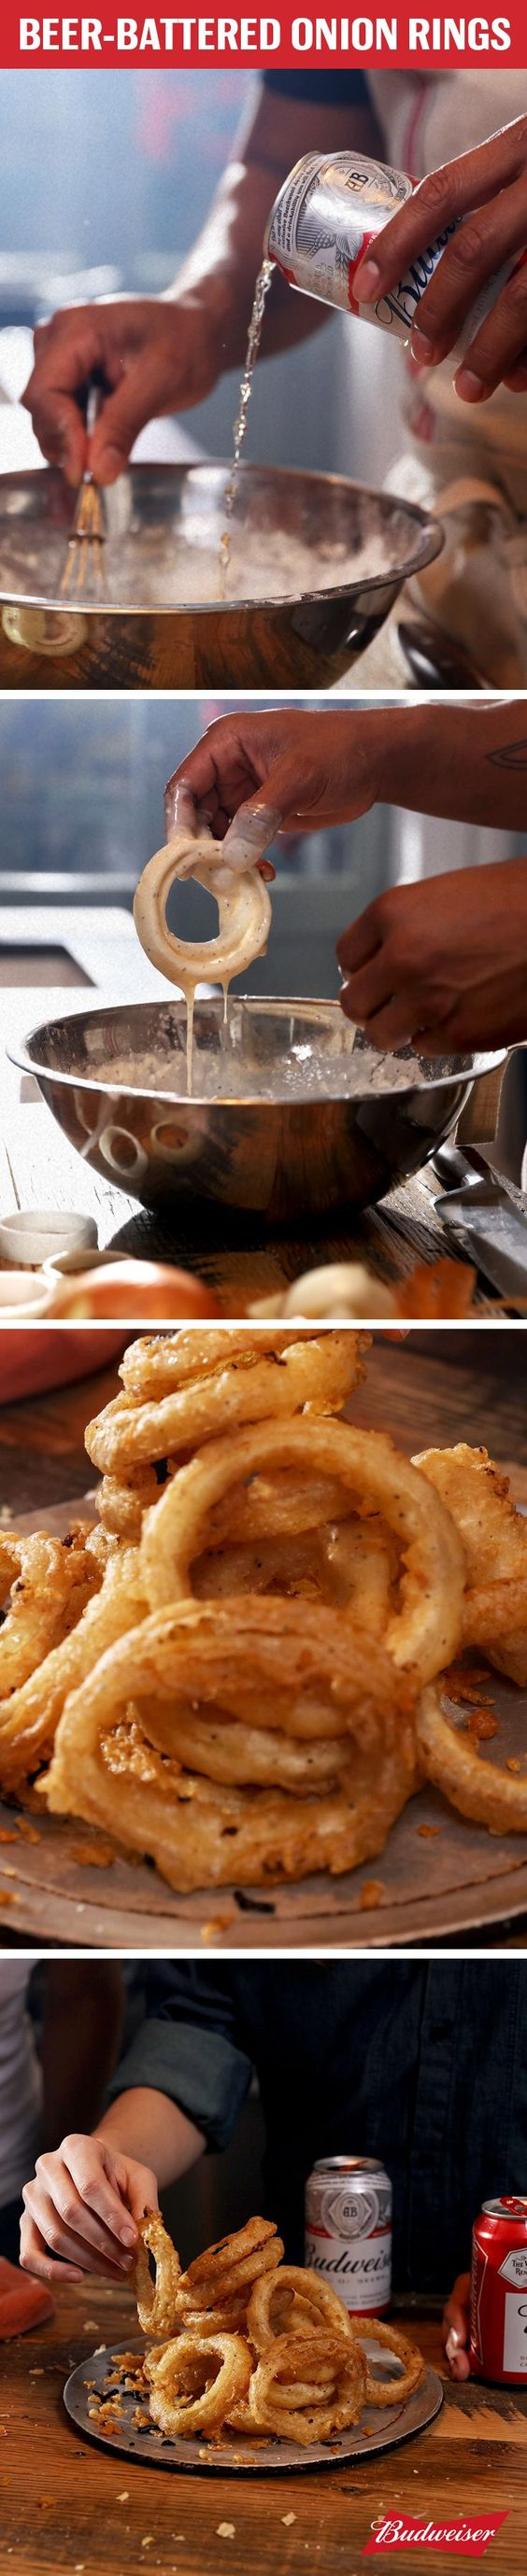 how to make batter for a battered save